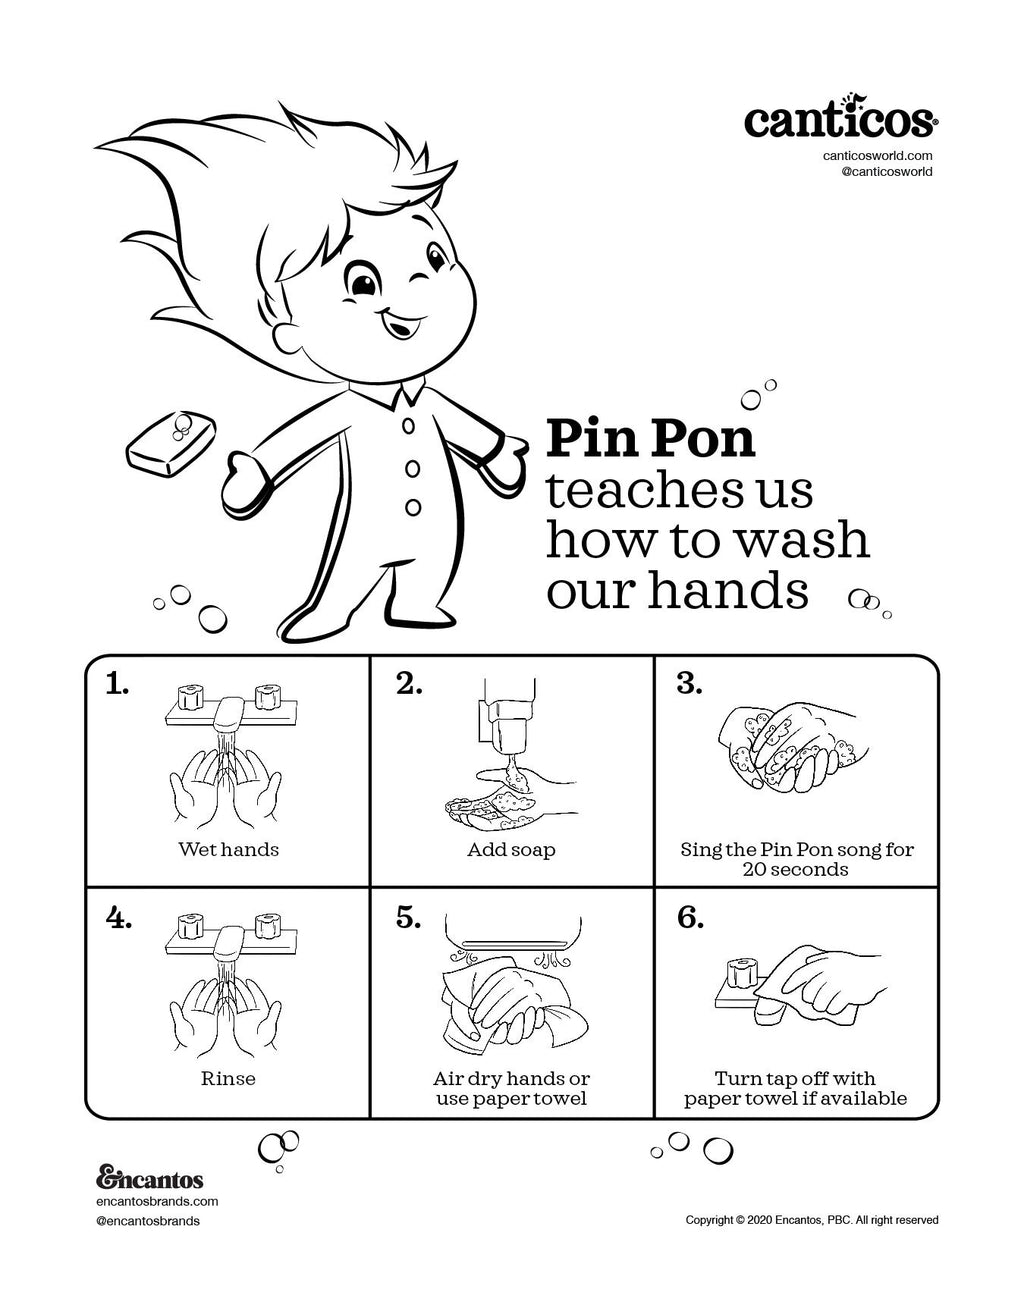 Printable Pin Pon Wash your hands Free Activity Sheet